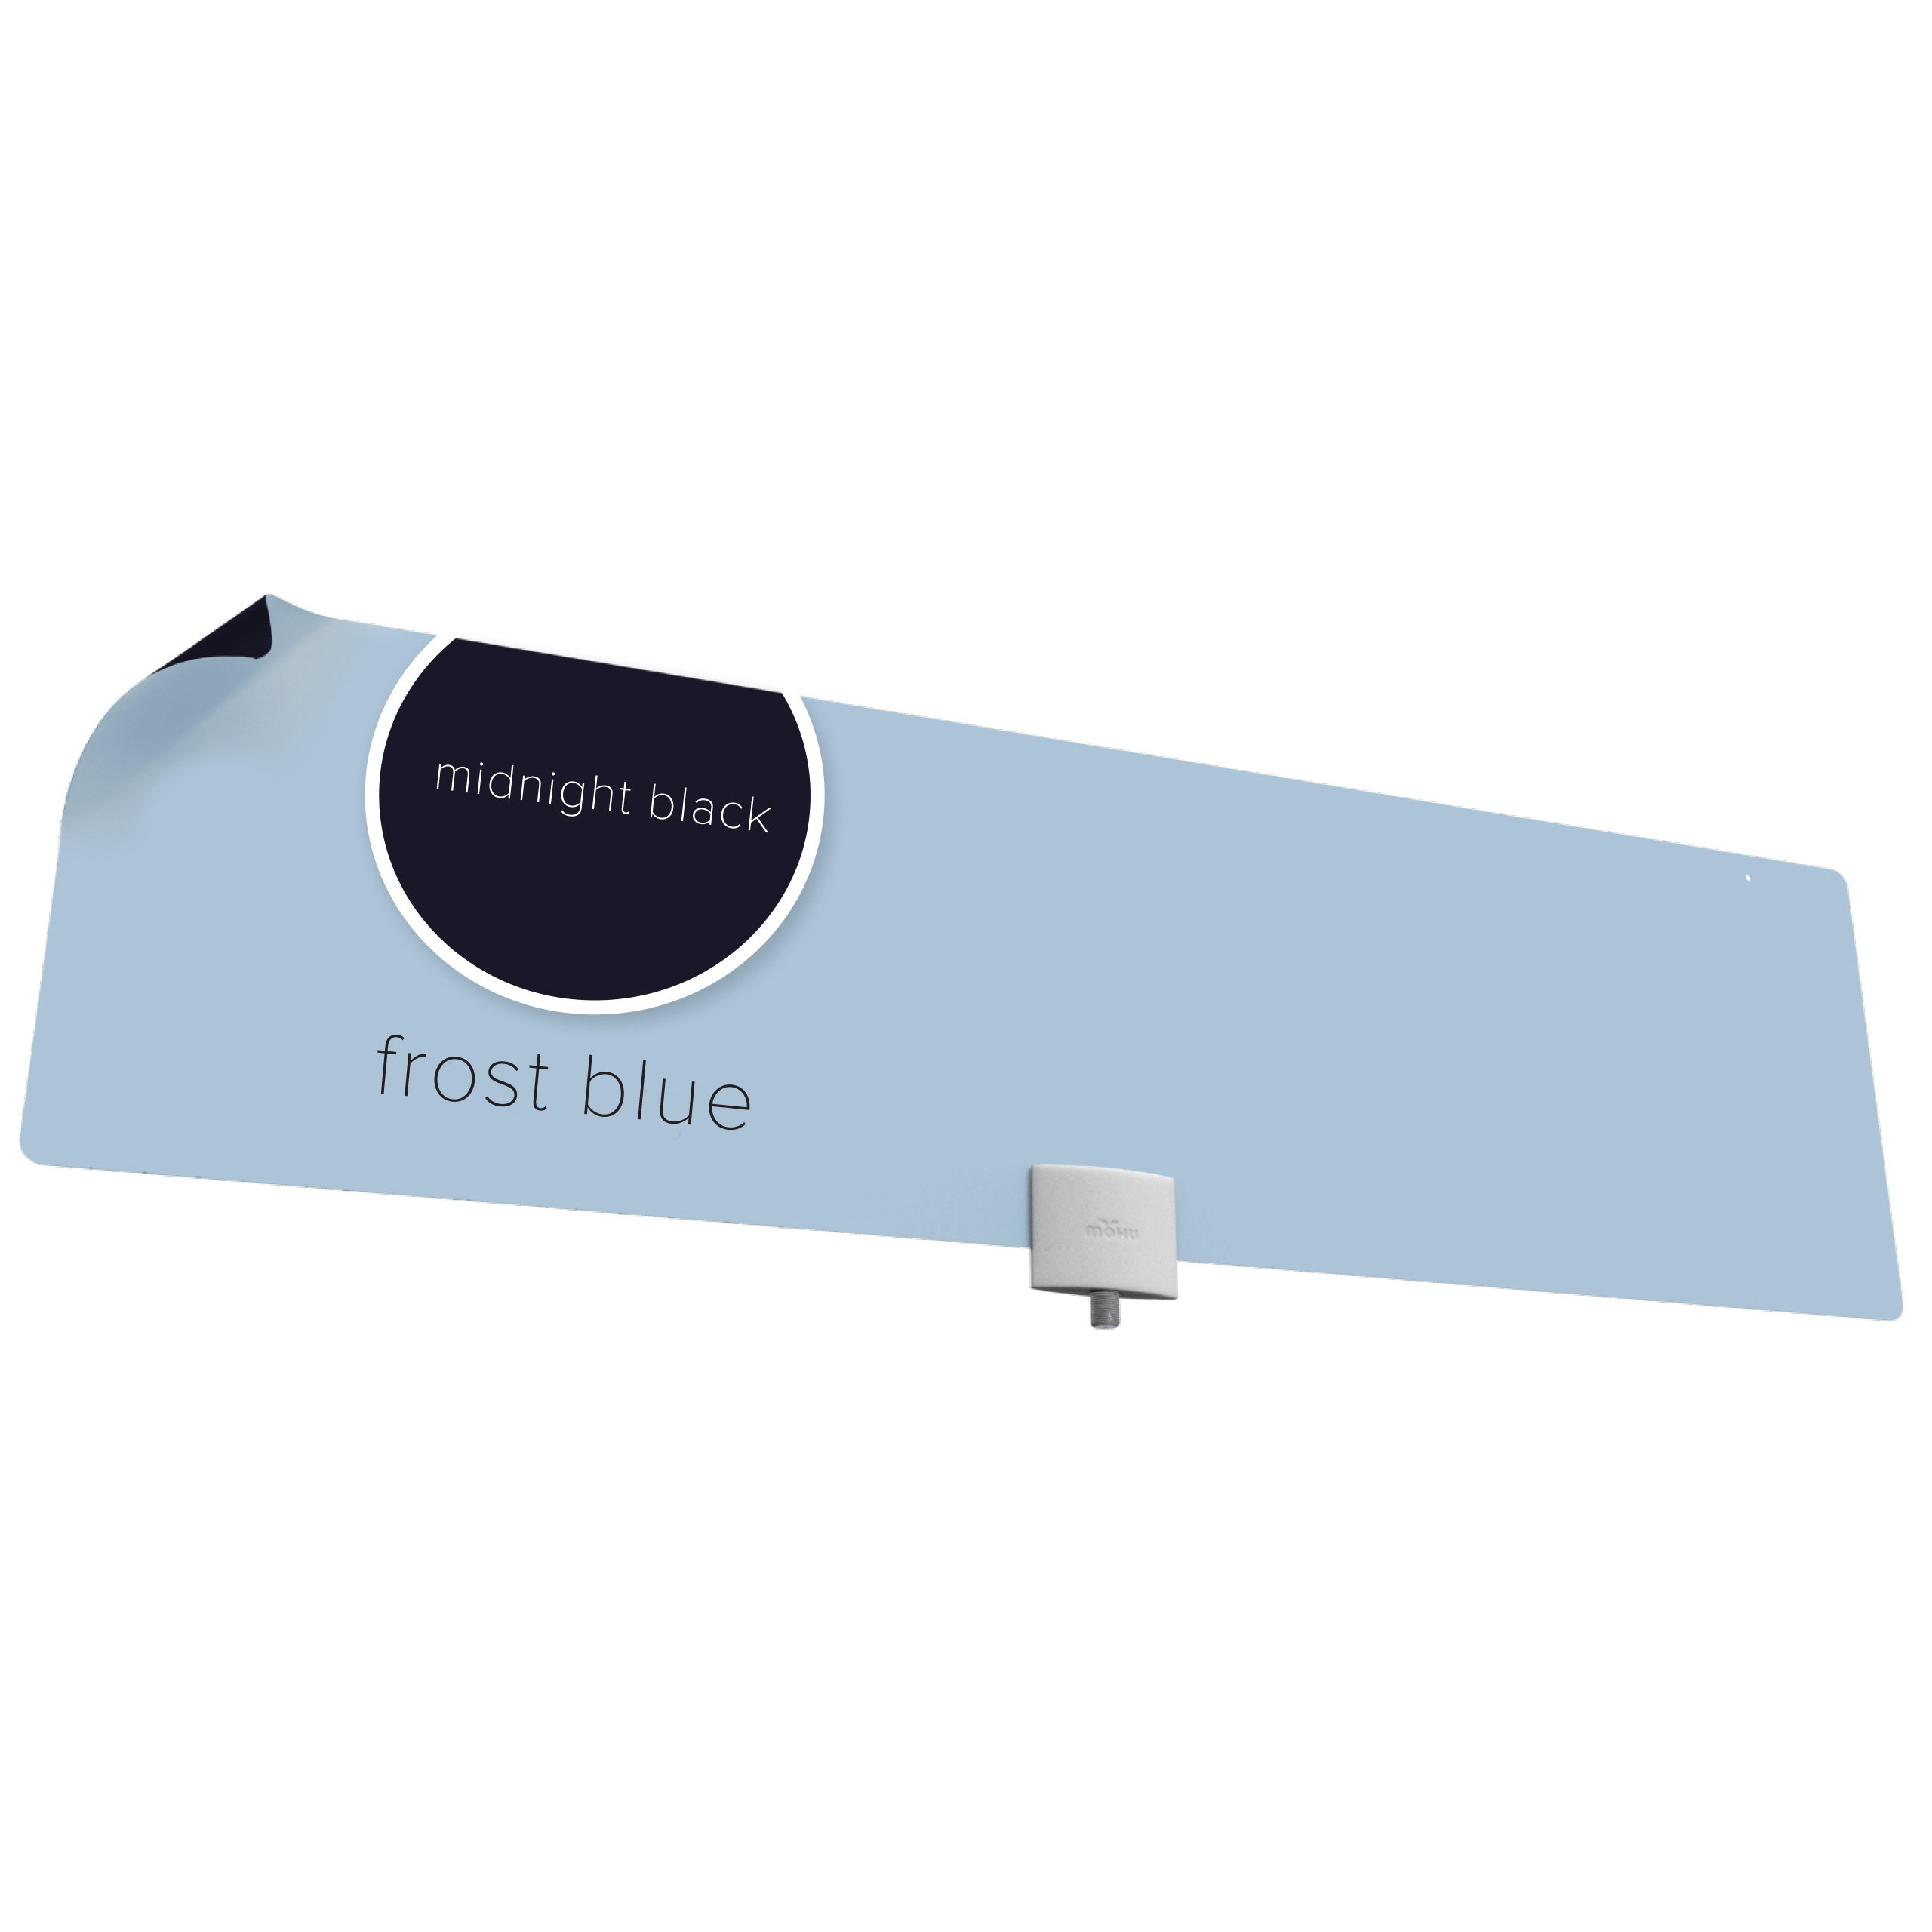 Mohu Chroma HDTV Antenna, Frost Blue/Midnight Black, Designer, Indoor, Amplified, 65-Mile Range (MH-110009)